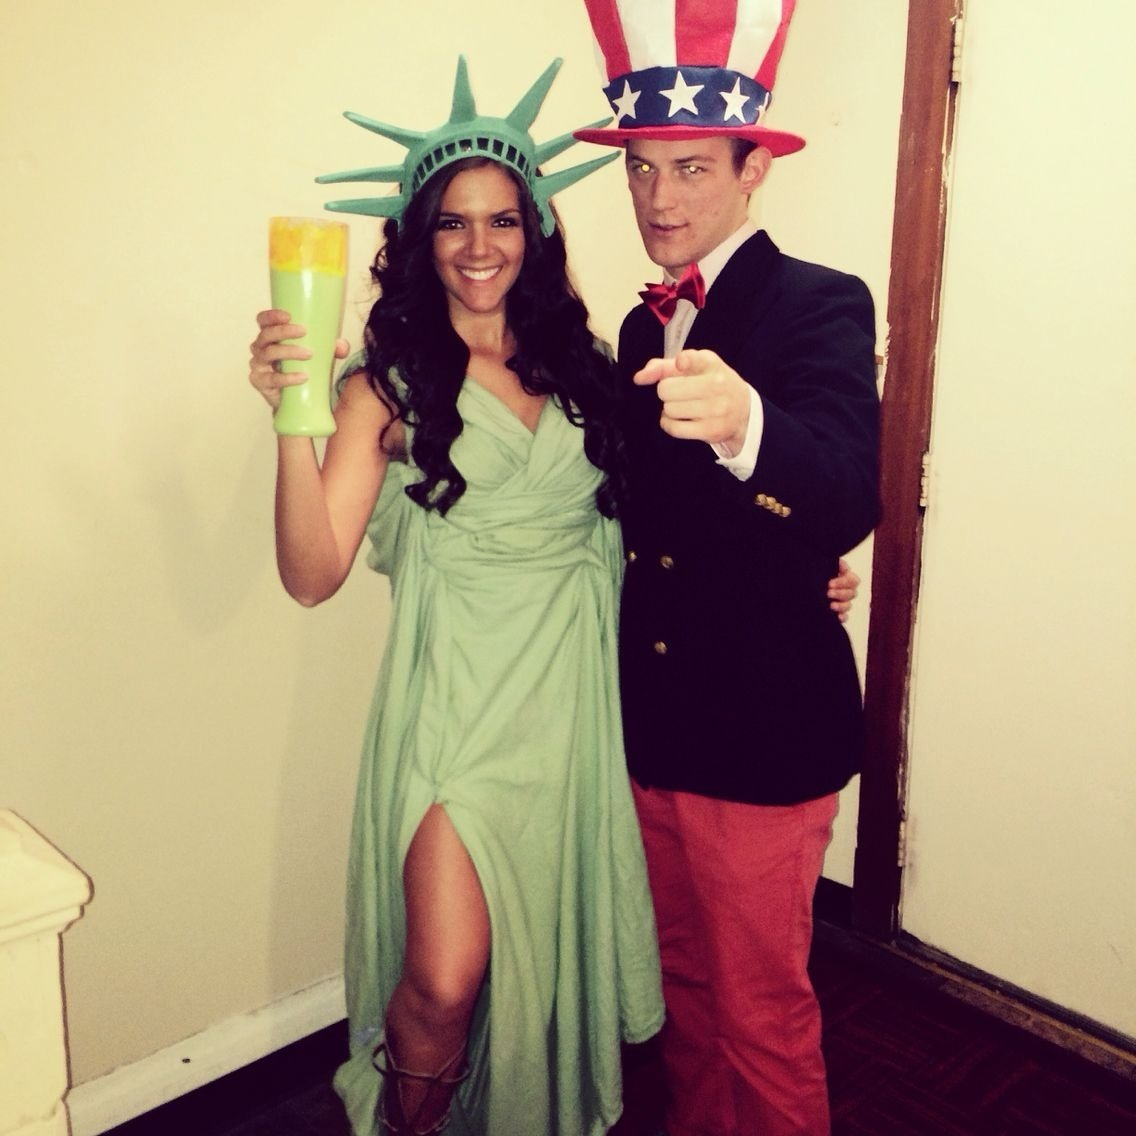 10 Trendy Boyfriend And Girlfriend Halloween Costume Ideas statue of liberty and uncle sam boyfriend girlfriend halloween 2020